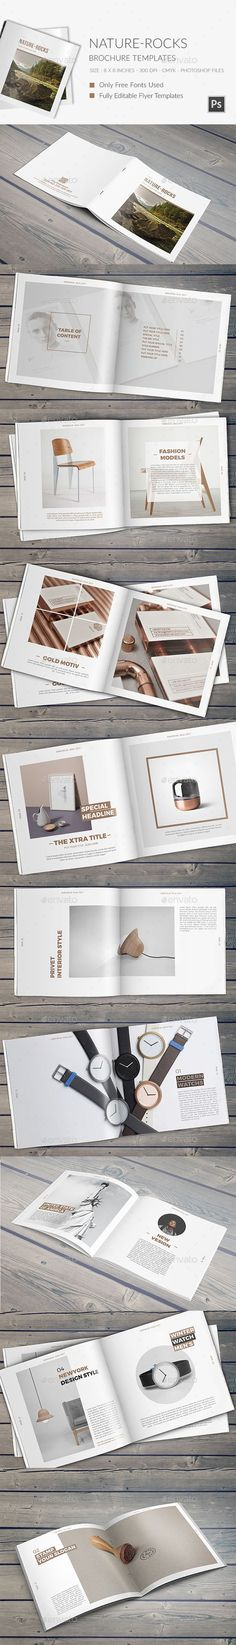 Nature-Rocks Square Portfolio Brochure Template PSD #design Download: http://graphicriver.net/item/naturerocks-square-portfolio-brochure-template/13542410?ref=ksioks: